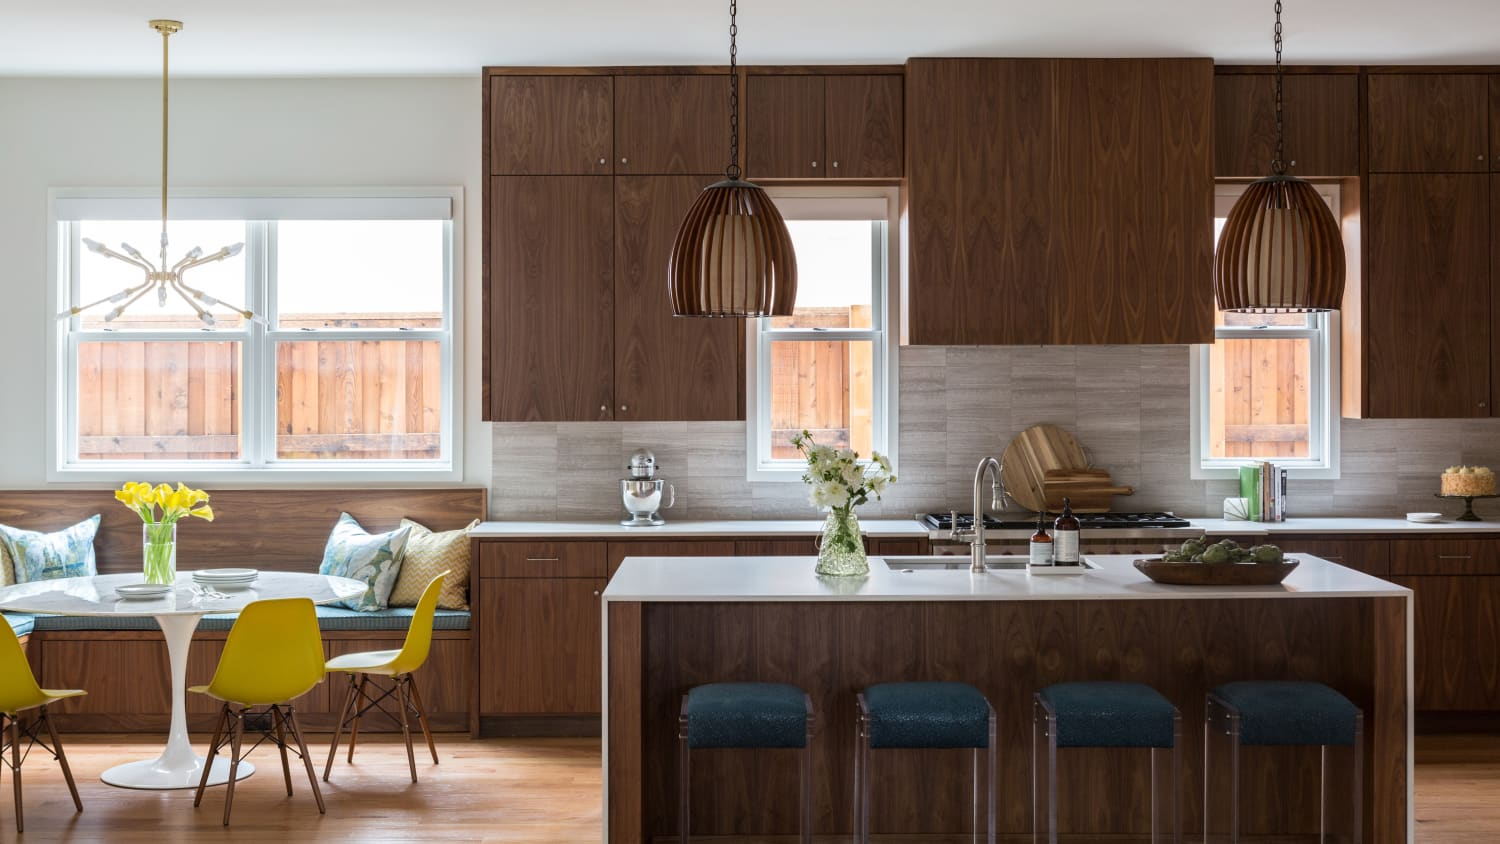 The Best And Most Popular Kitchen Trends For In 2021 According To Designers Apartment Therapy